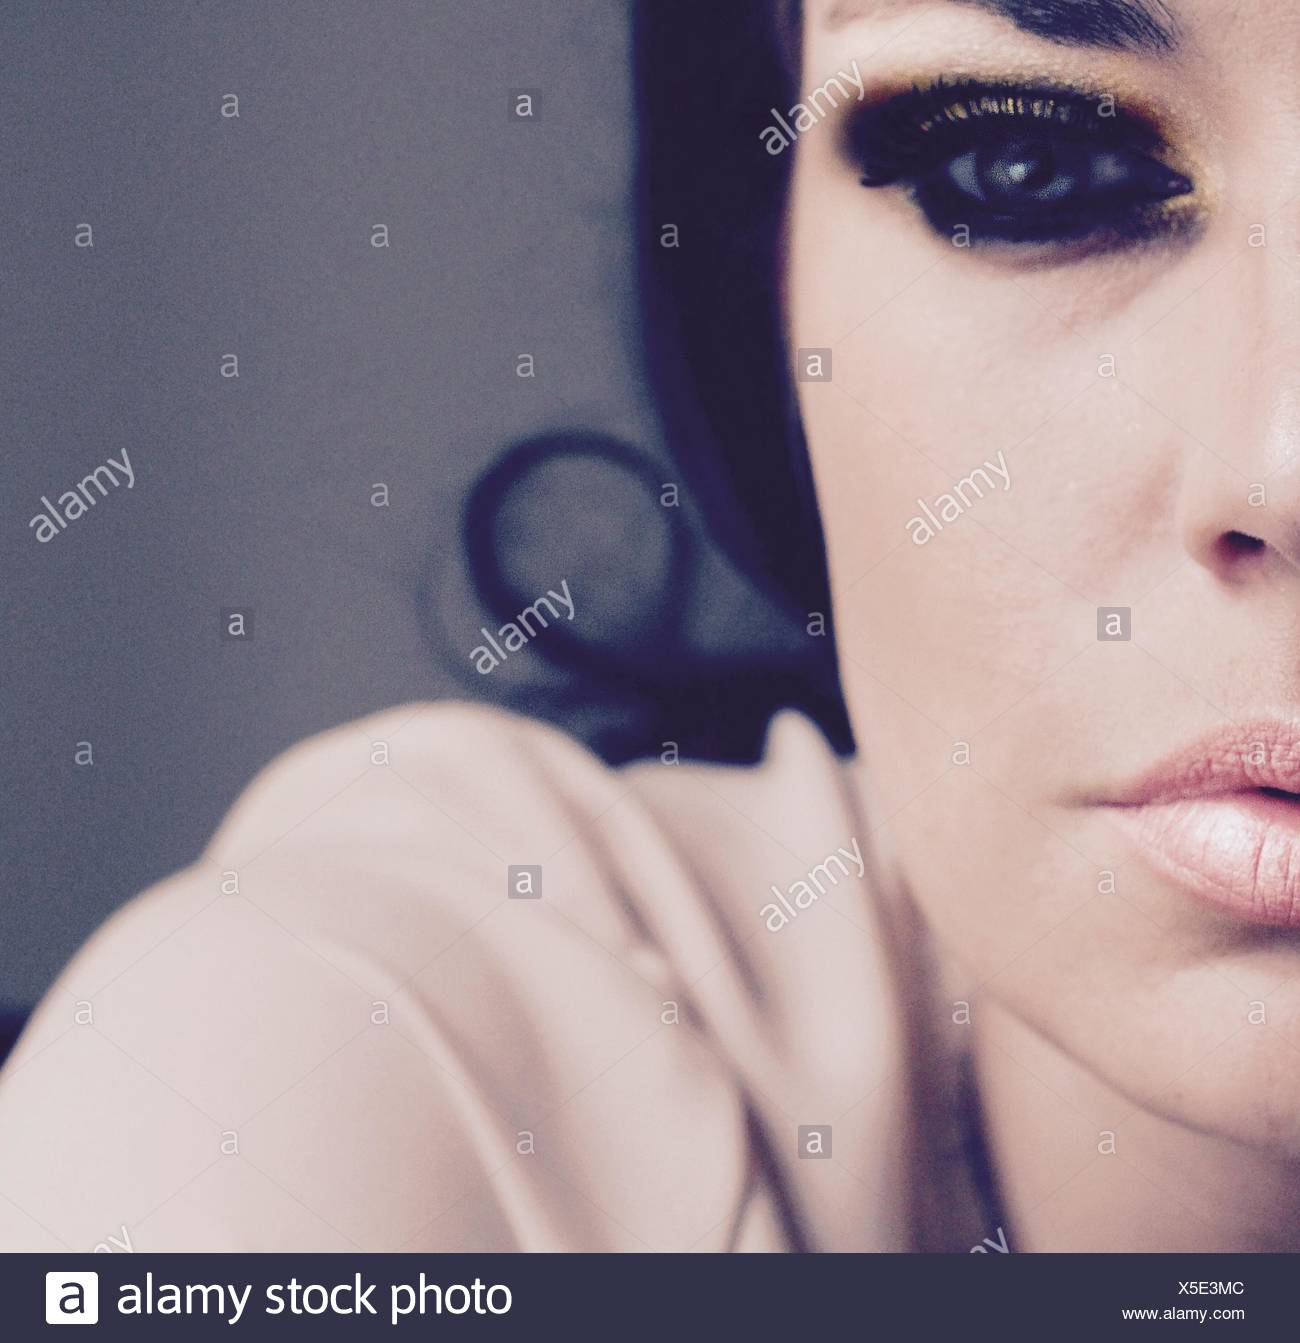 Close-Up Of Woman In Eye Make-Up - Stock Image